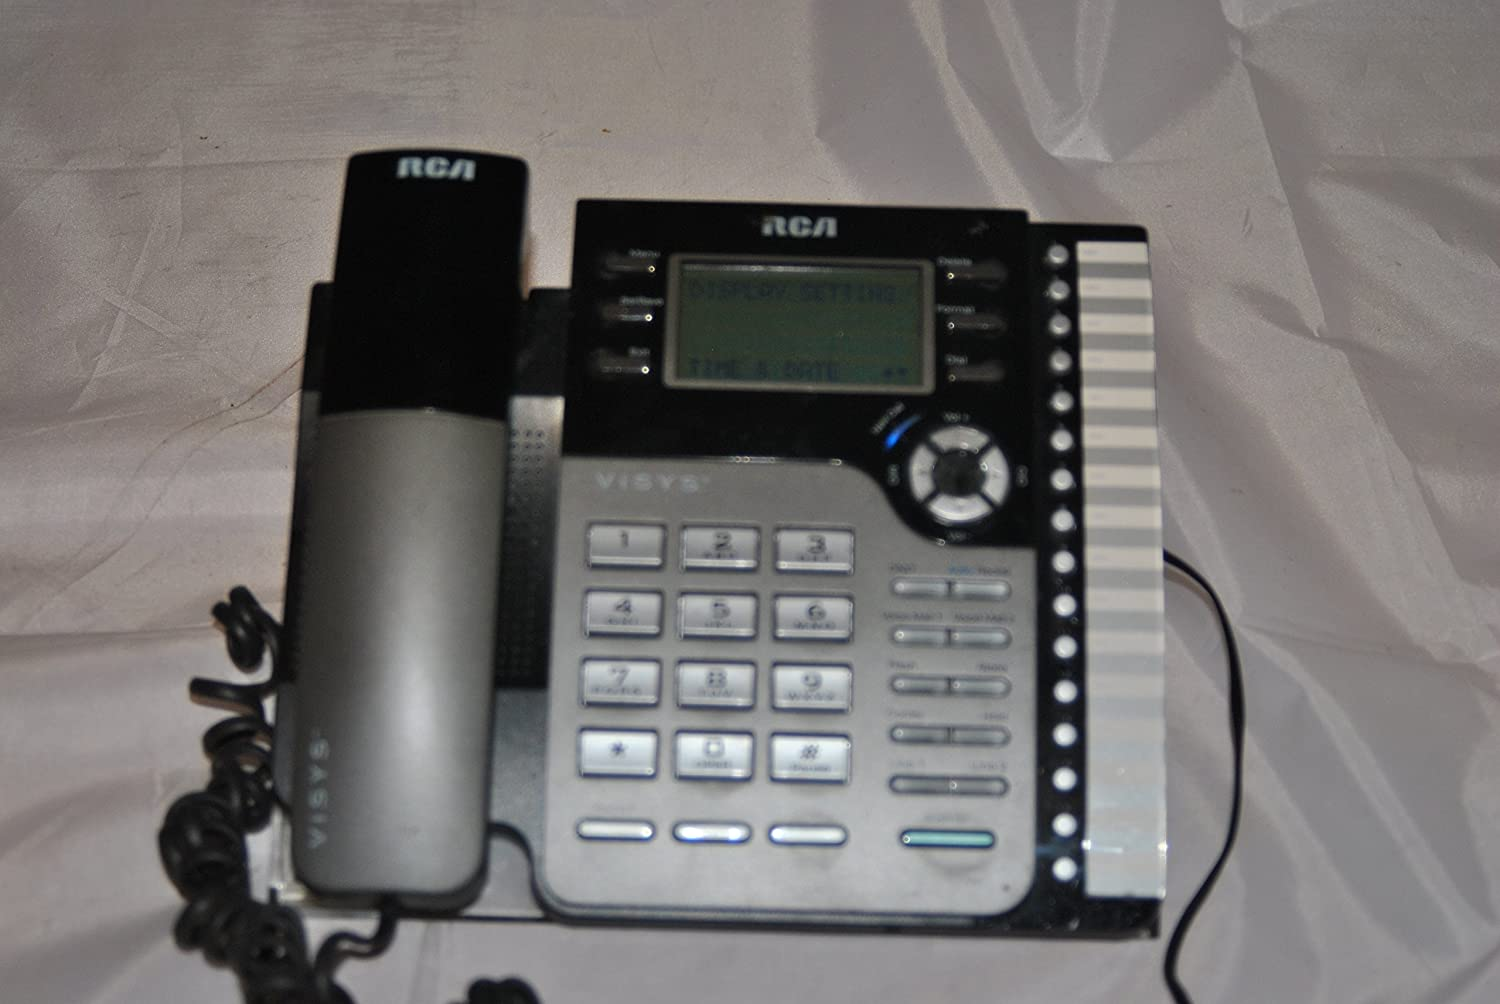 Telephone RCA VISYS 25204RE1-A with Power Supply